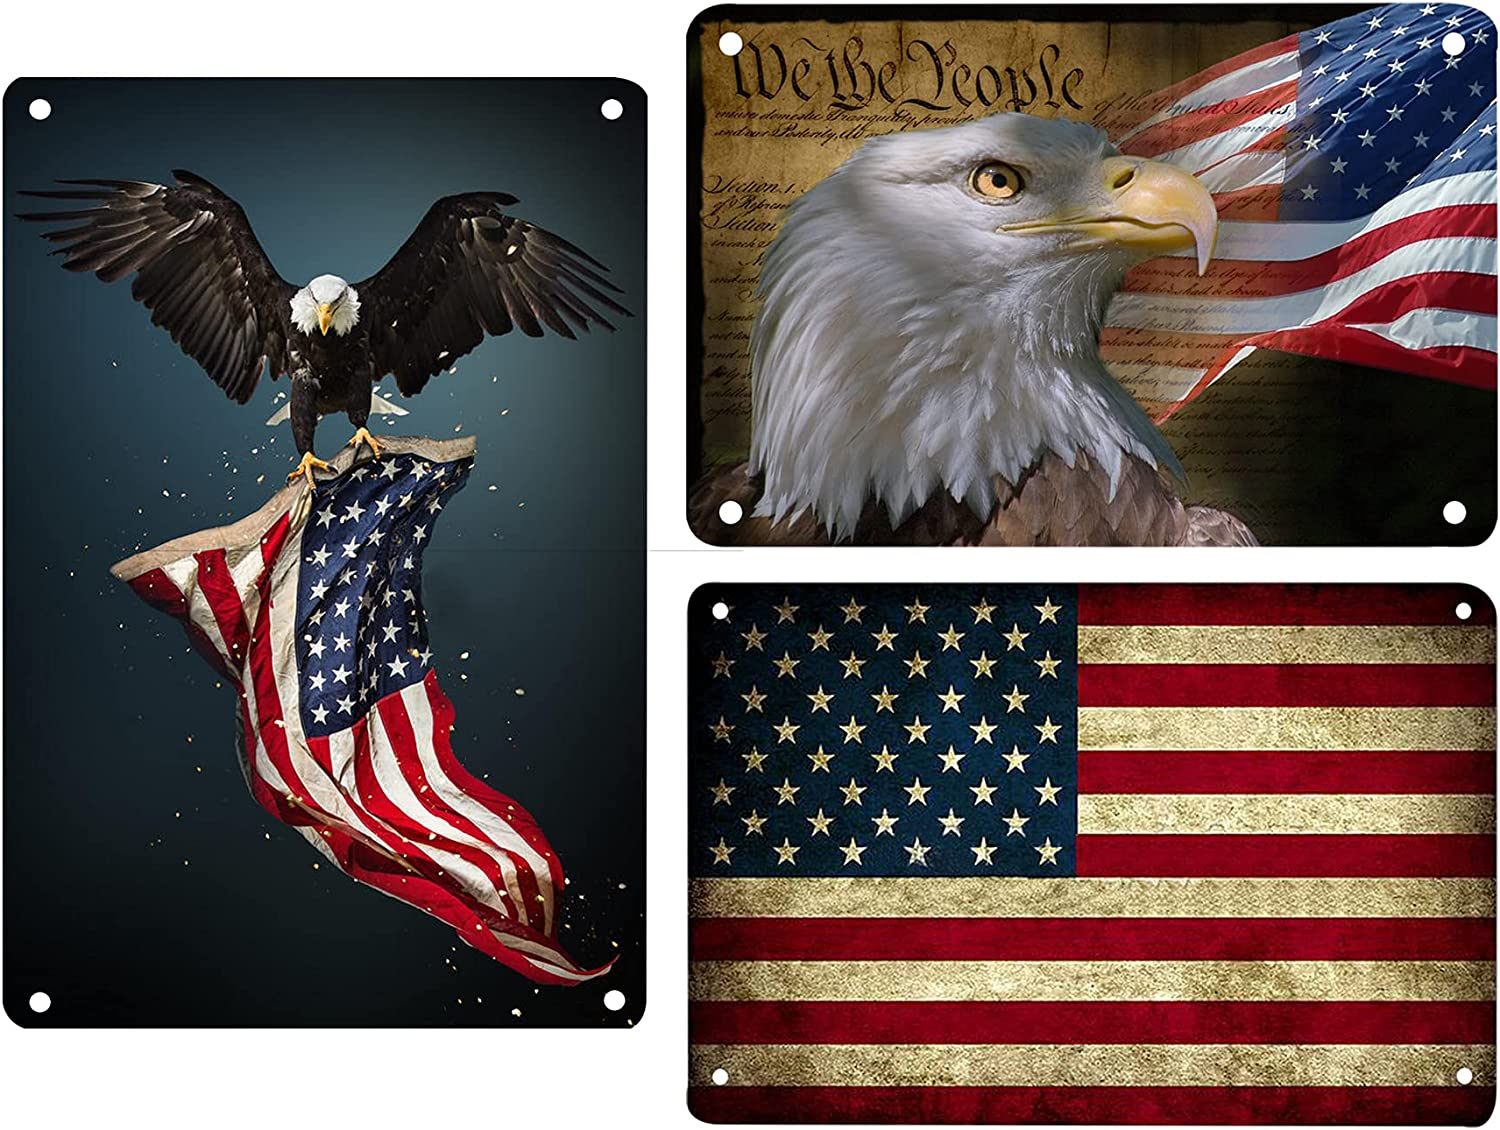 American Flag Metal Tin Sign US Pledge of Allegiance Wall Decor Metal Retro Signs Bar Signs Decor for Home Cafe Bar Pub 8X12 in - 3PCS